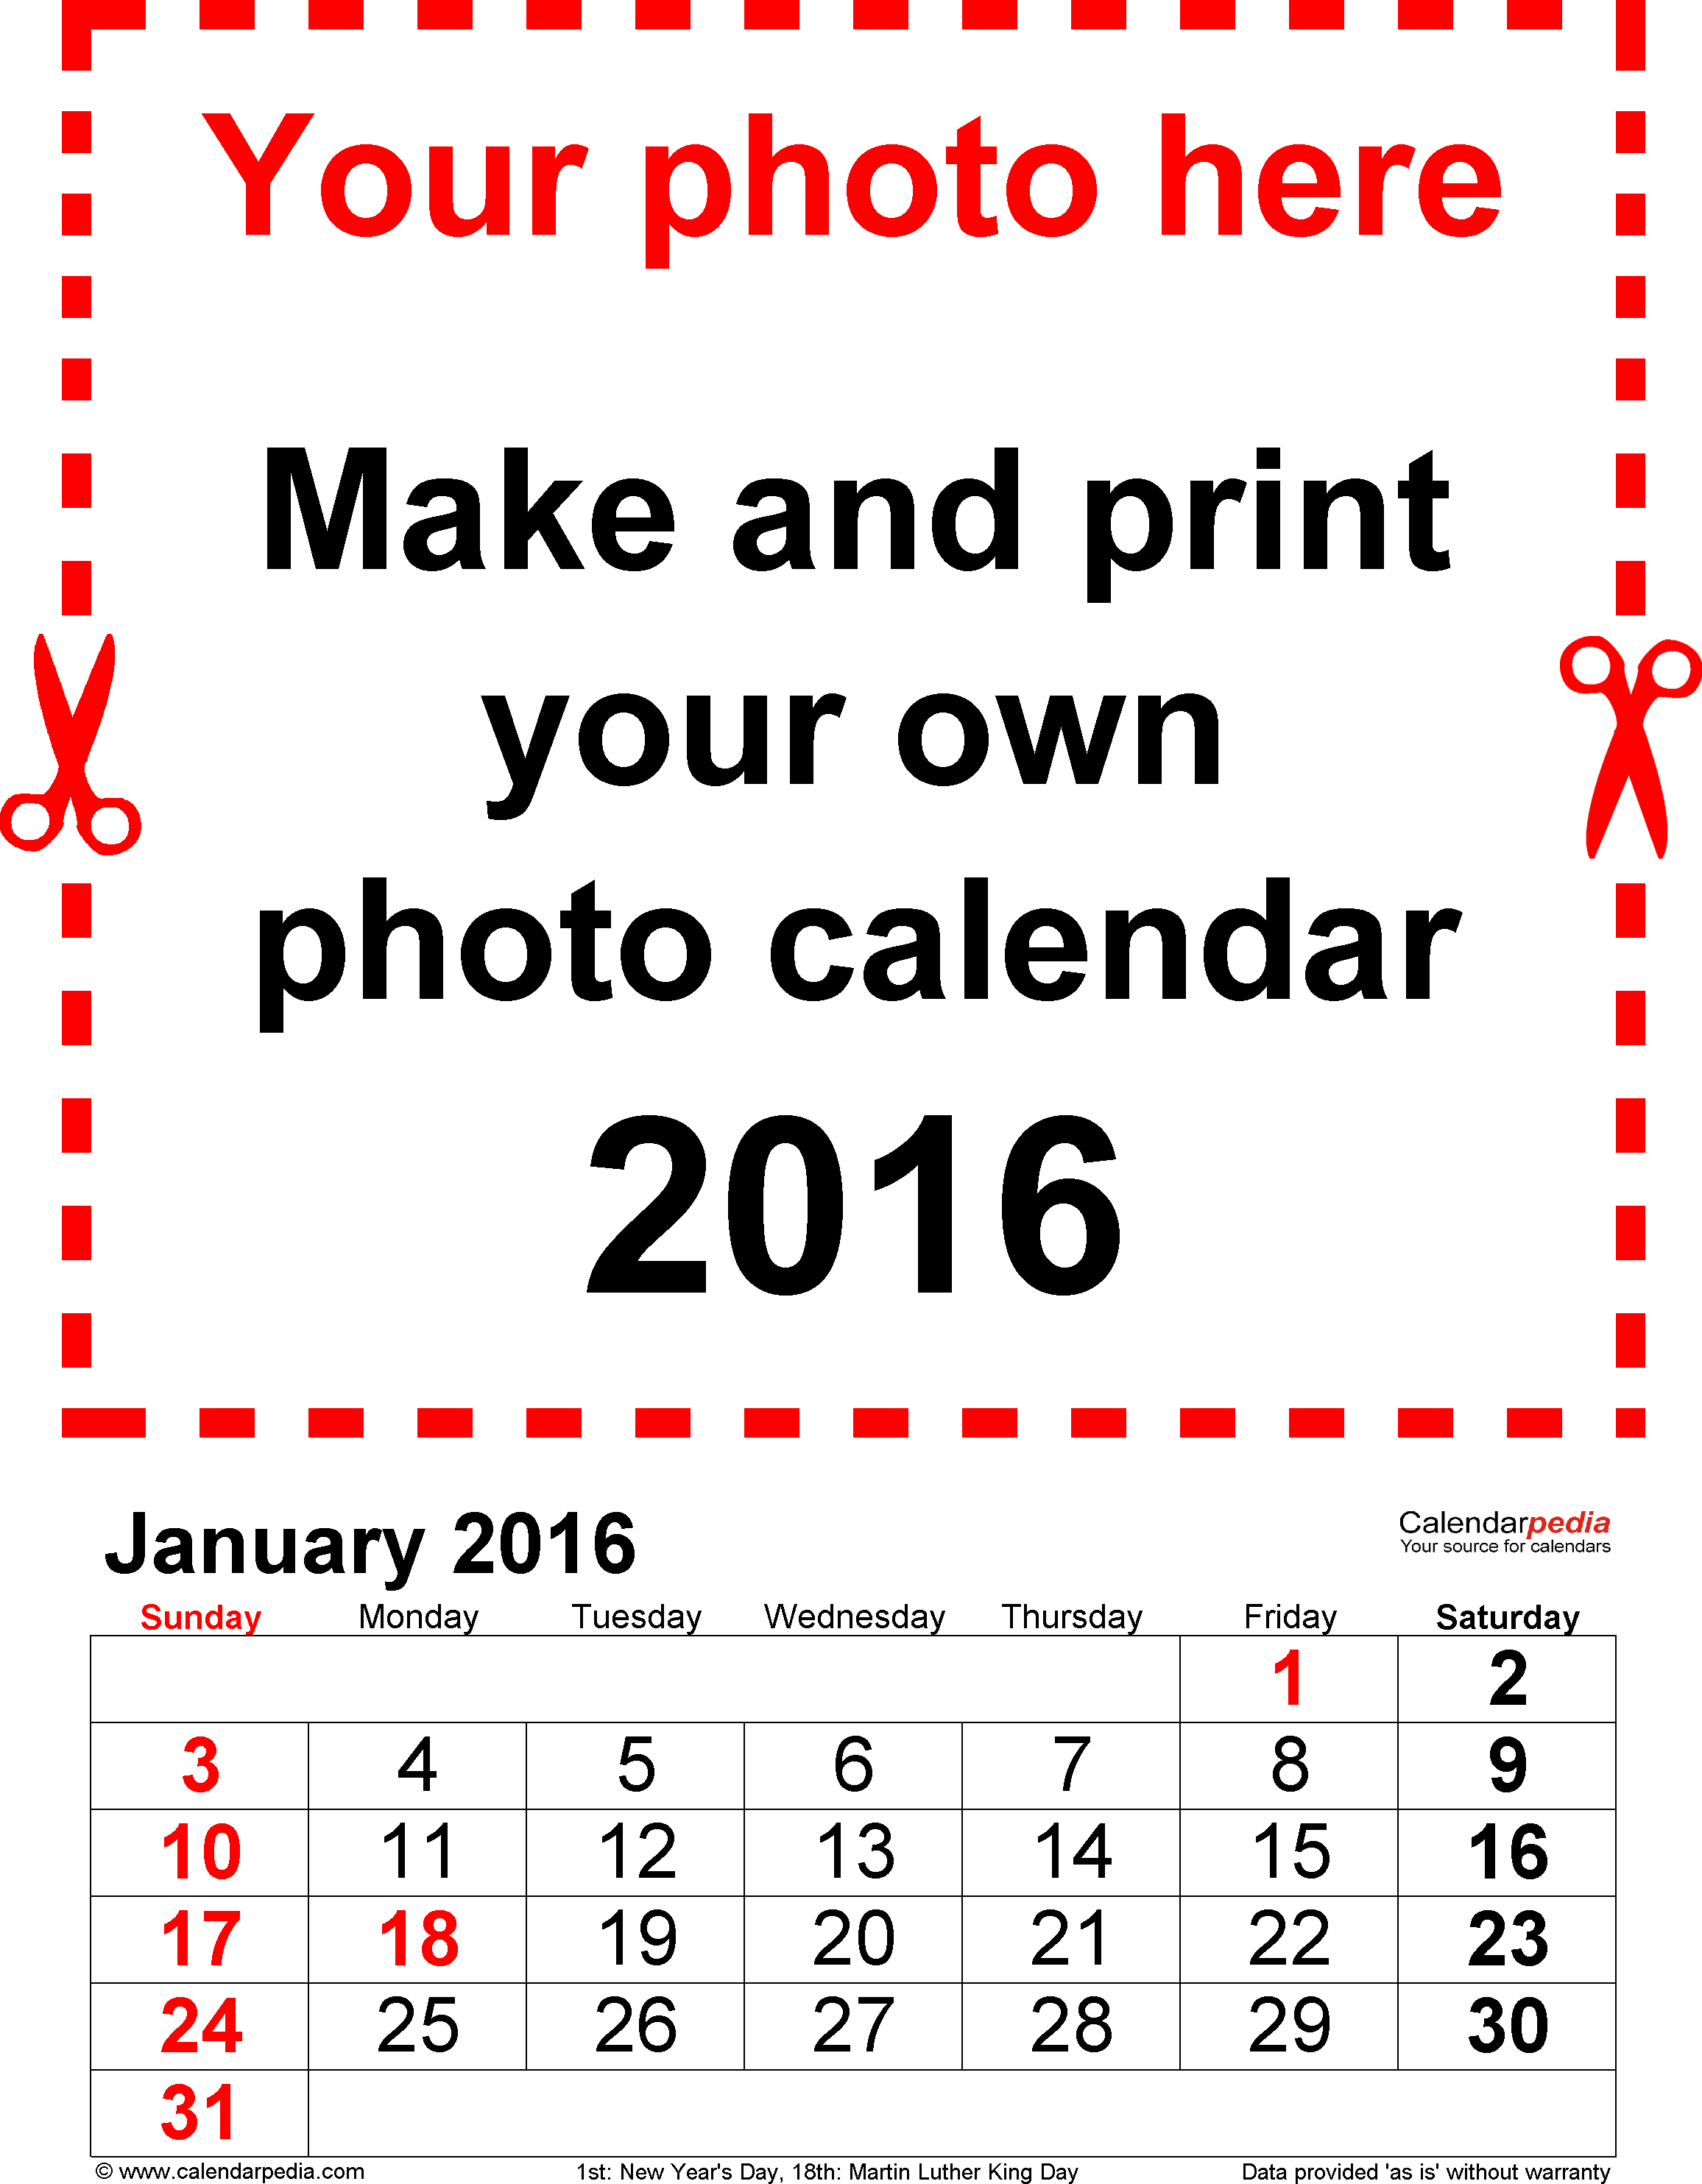 Download Template 2: Photo calendar 2016 for PDF, 12 pages, portrait format, large numerals for easy reading